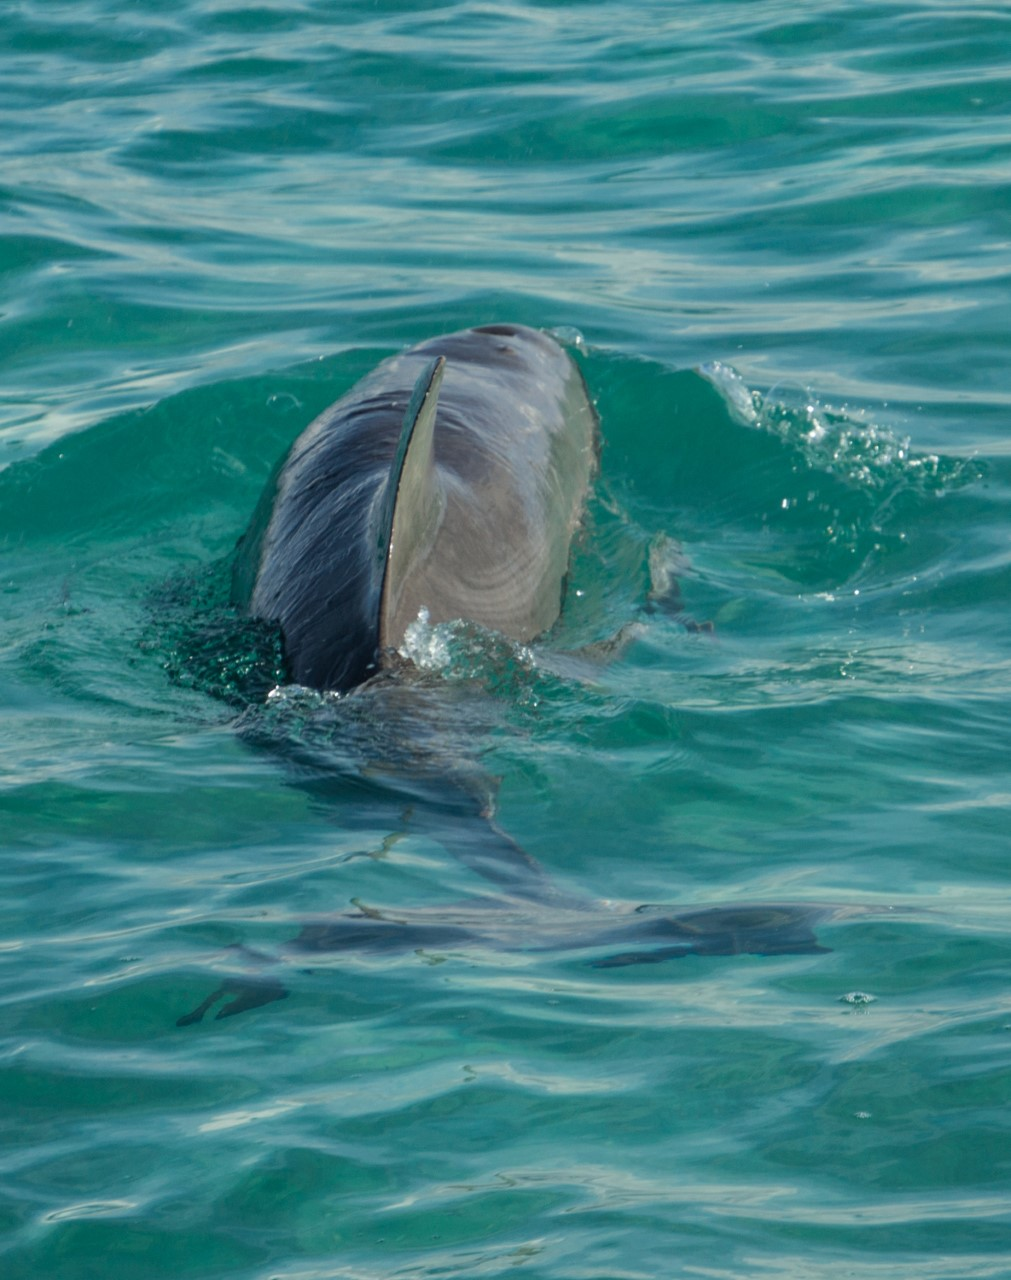 A dolphin makes a close boat pass whilst taking a breath